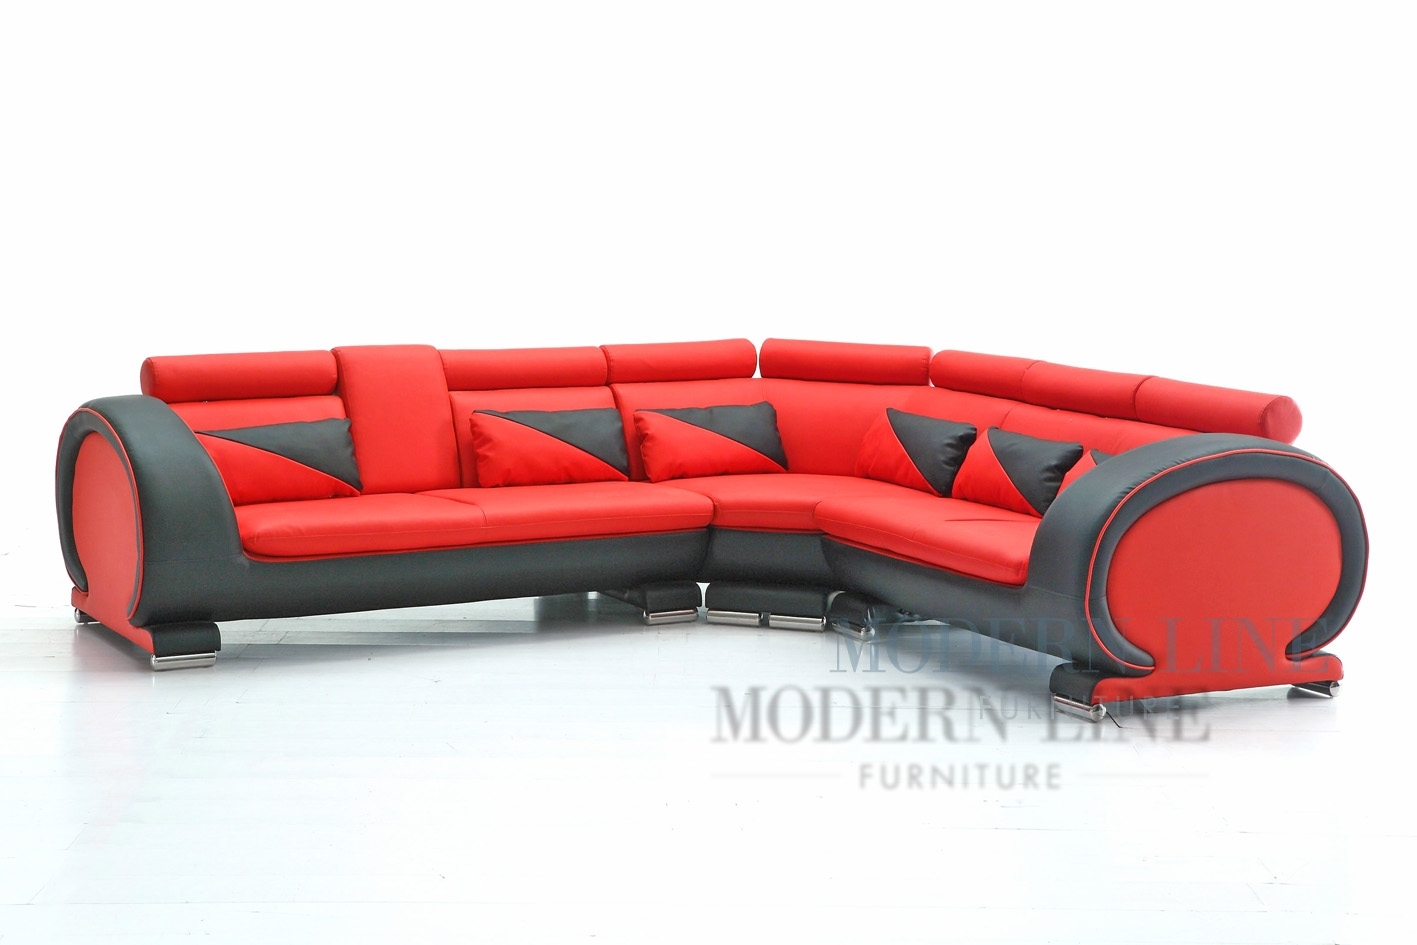 Emejing Red And Black Leather Sectional Gallery – Liltigertoo For Red Black Sectional Sofas (View 5 of 10)